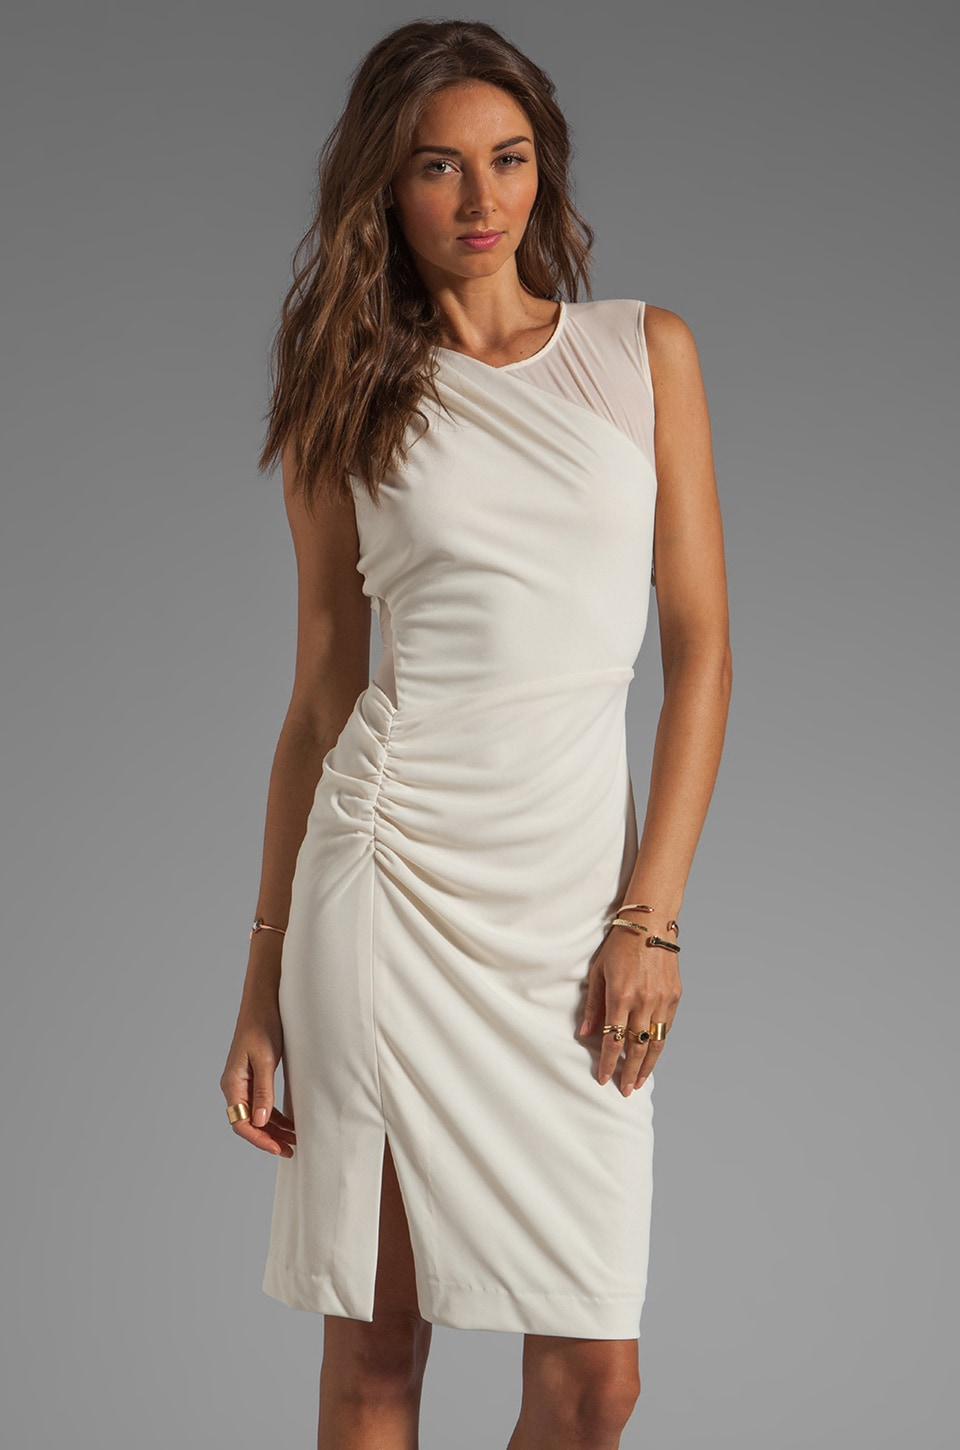 Halston Heritage Sleeve Dress With Sheer Contrast and Side Leg Slit in Cream